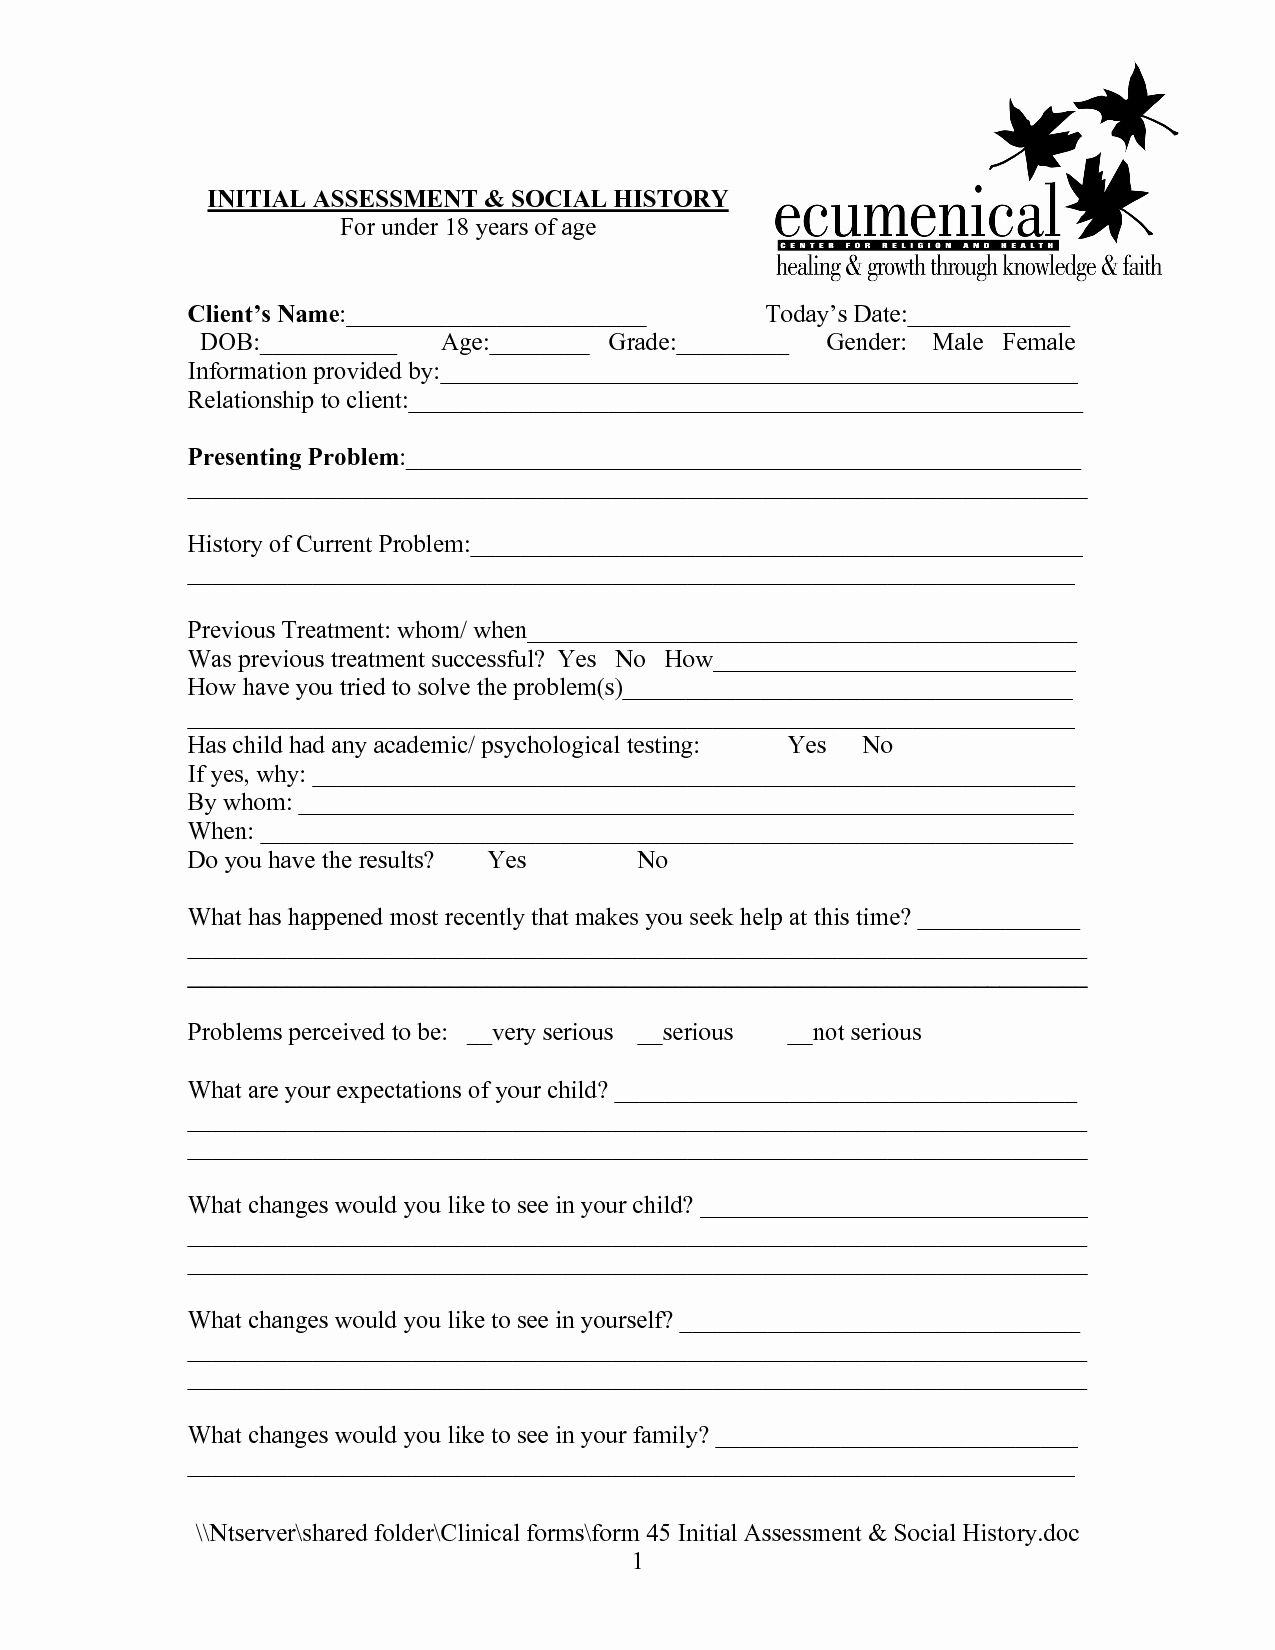 Counseling Intake Form Template Lovely Social Work Intake Form